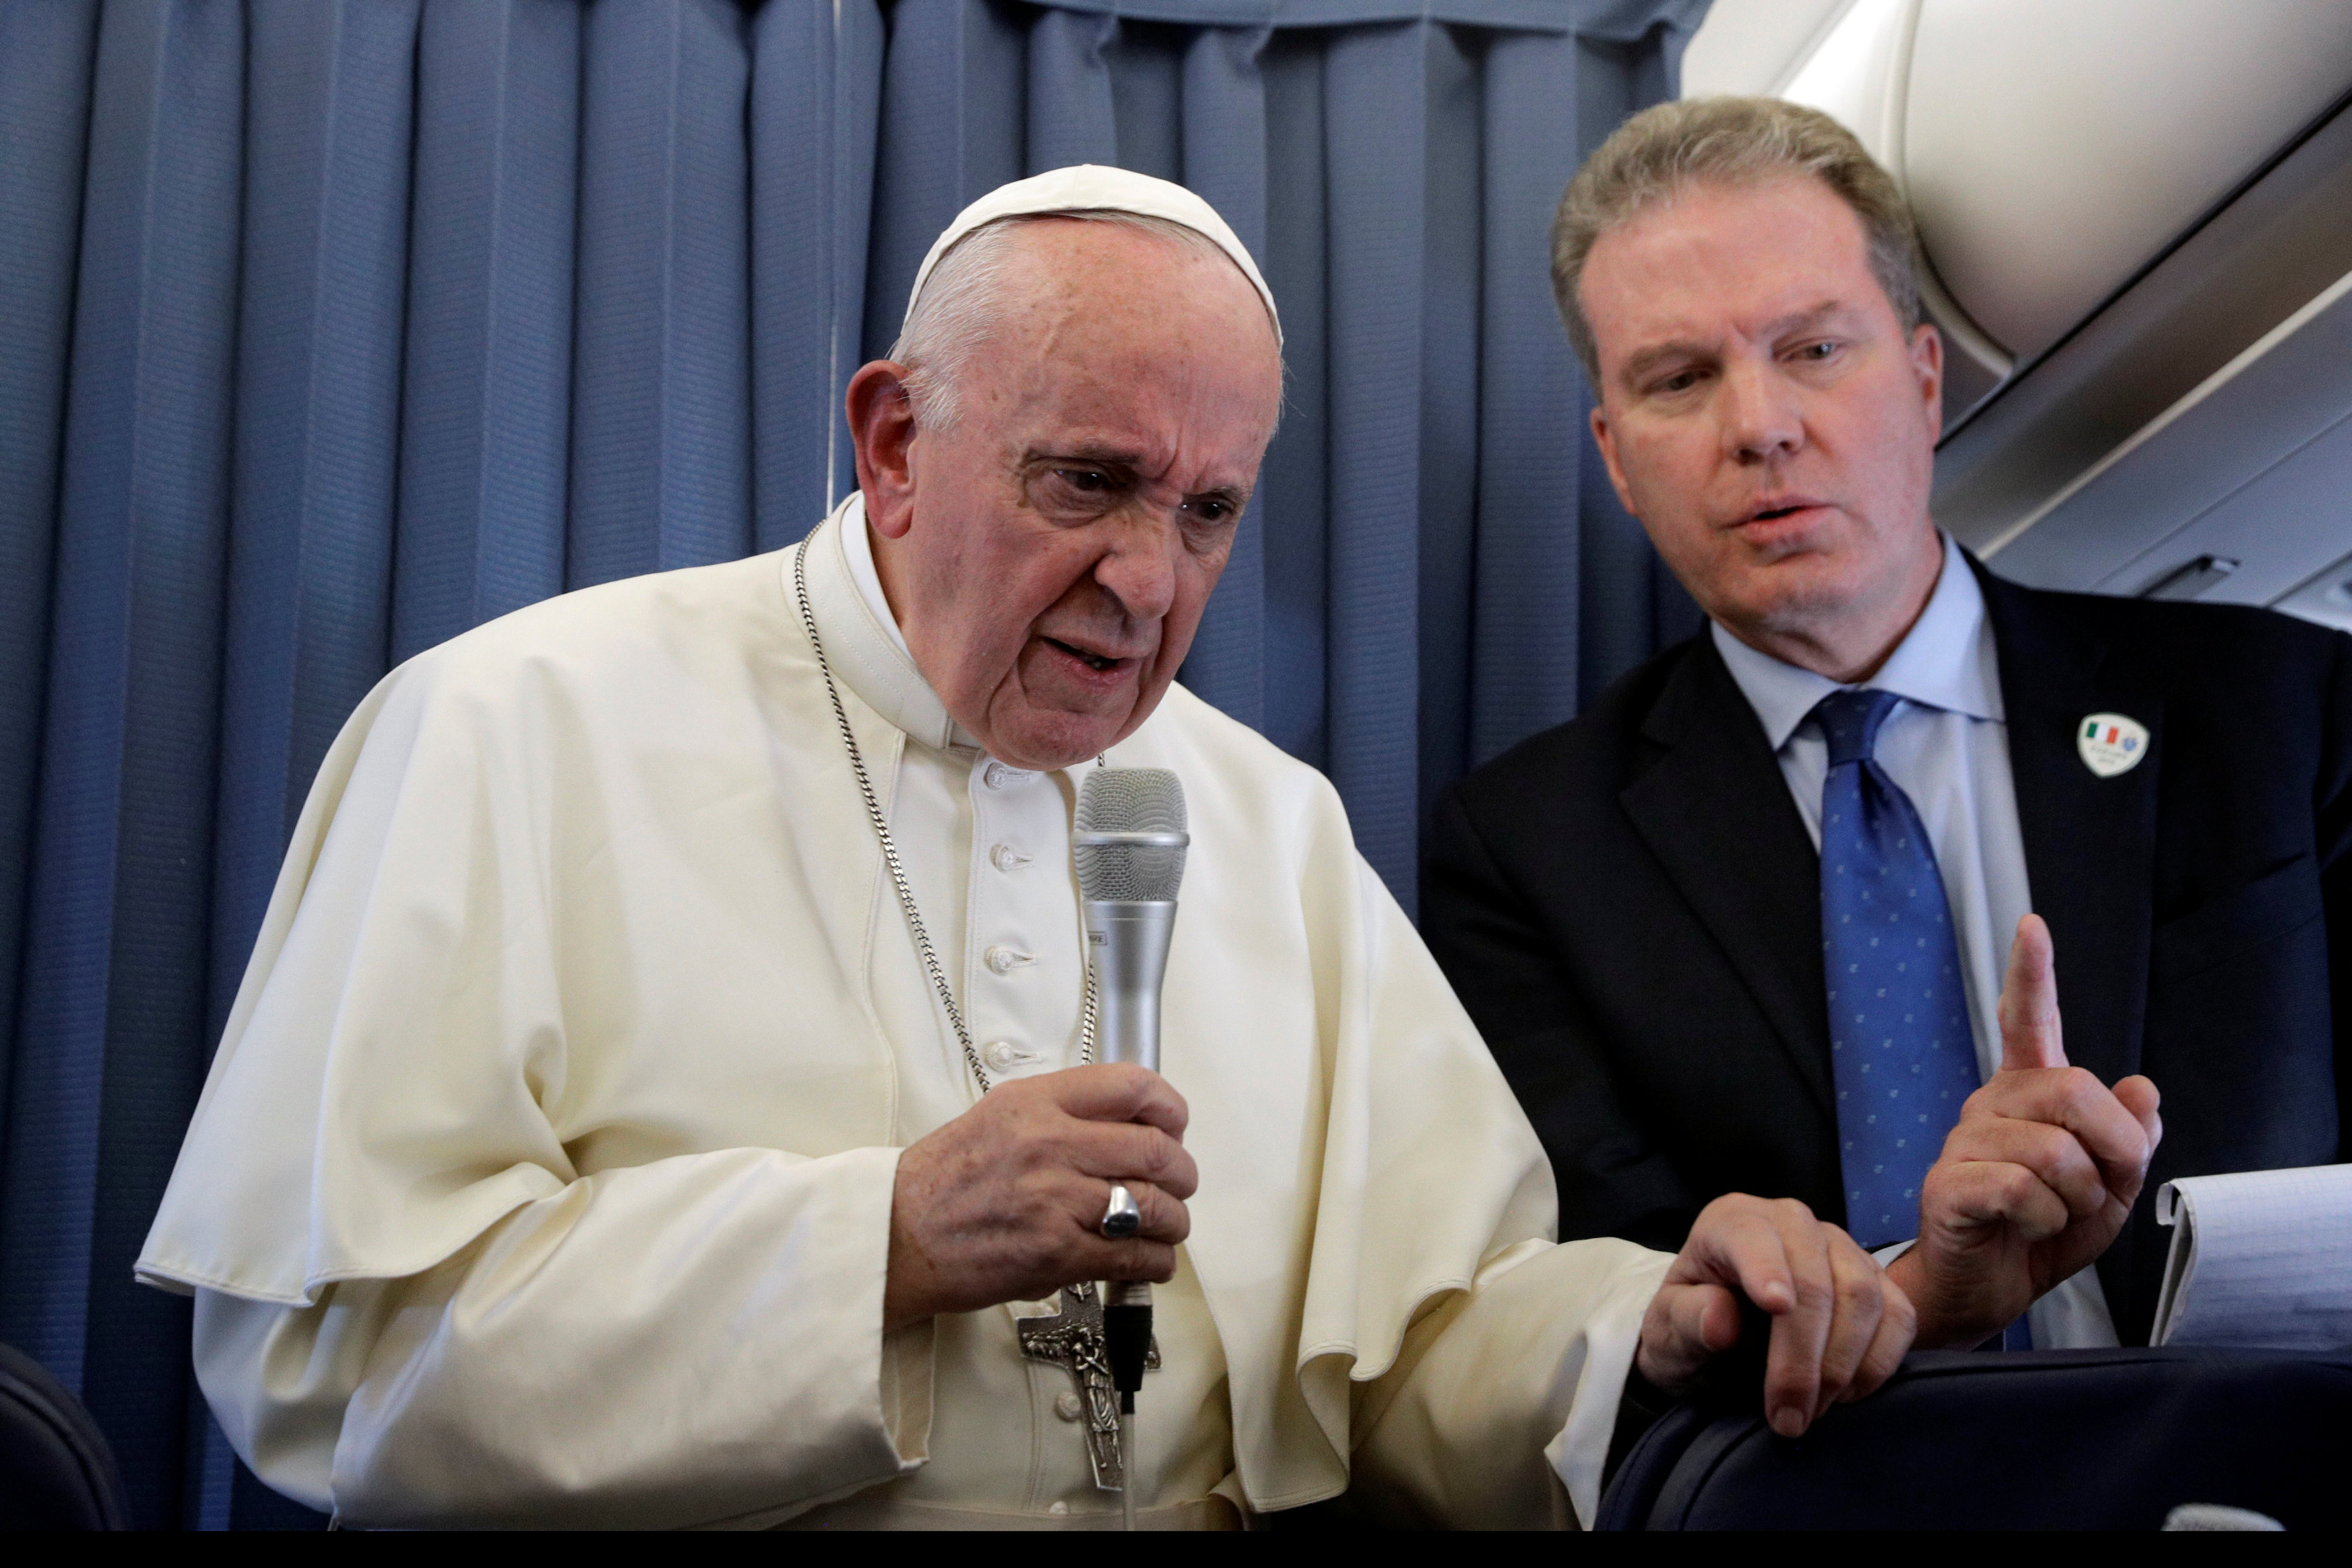 Pope Francis speaks with the media during his flight back from a trip in Dublin. Photo: Reuters